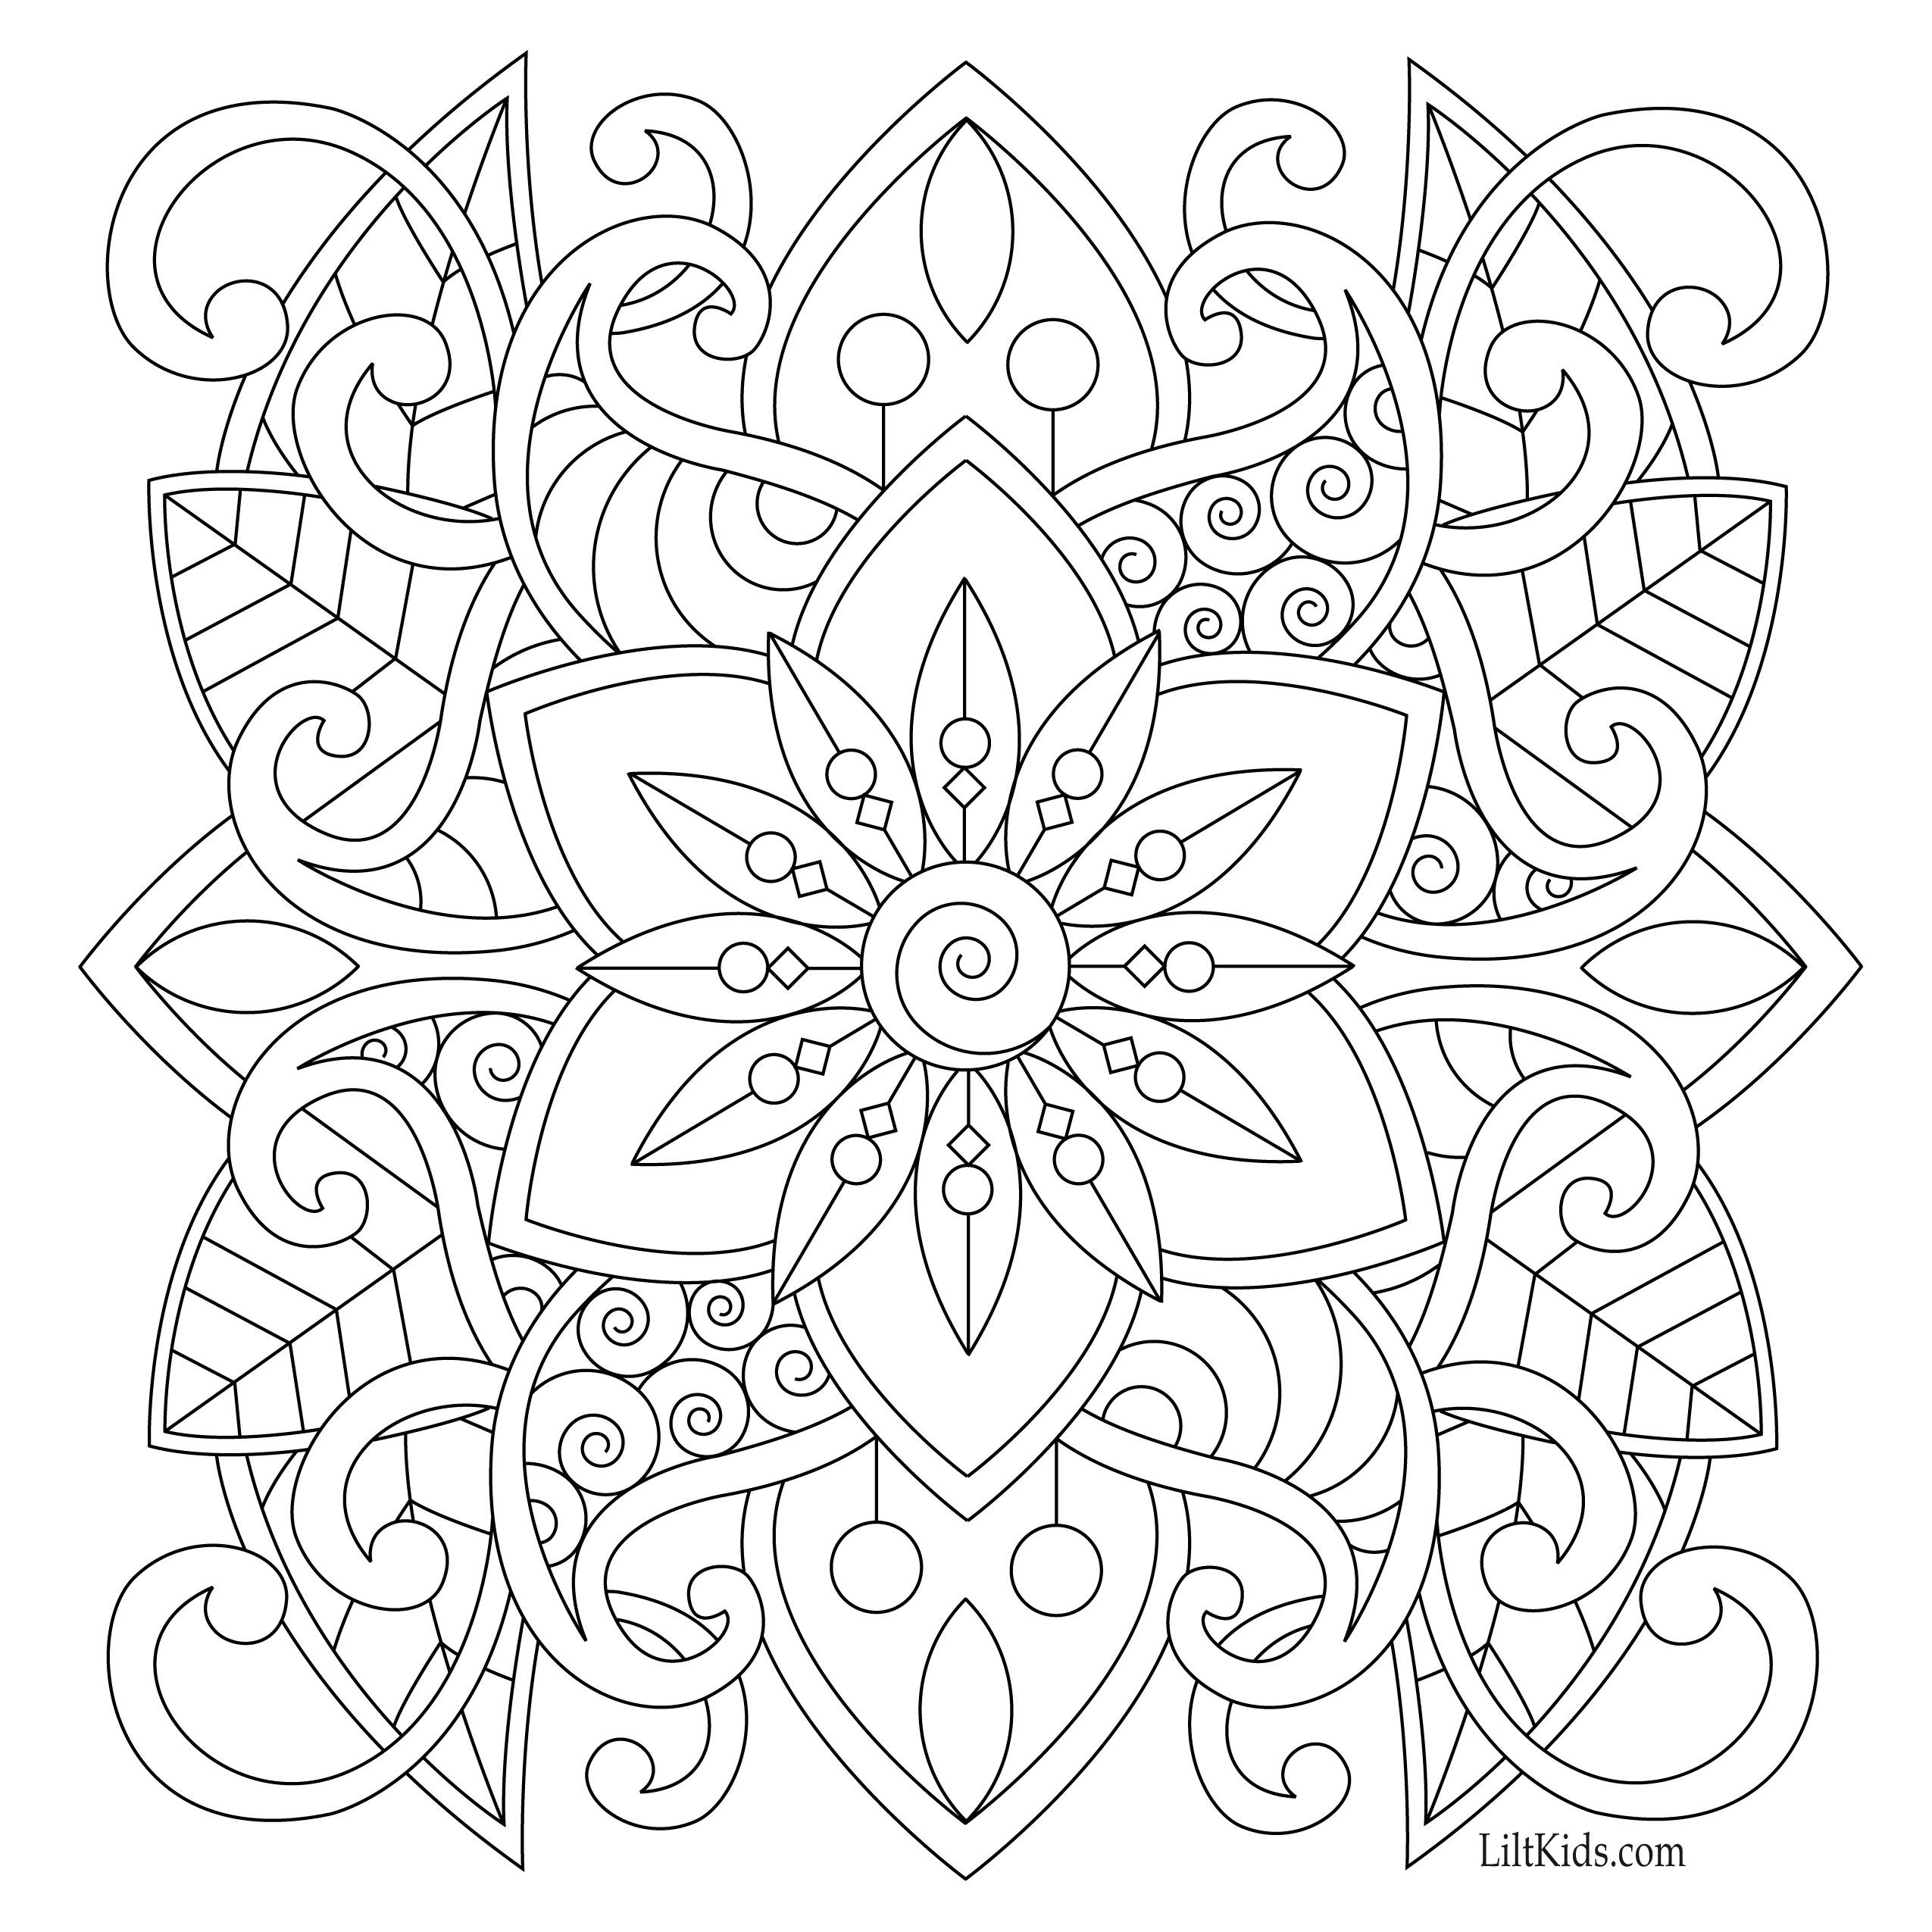 100+ Free Adult Coloring Pages   Easy coloring pages ...   free printable mandala coloring pages for adults easy